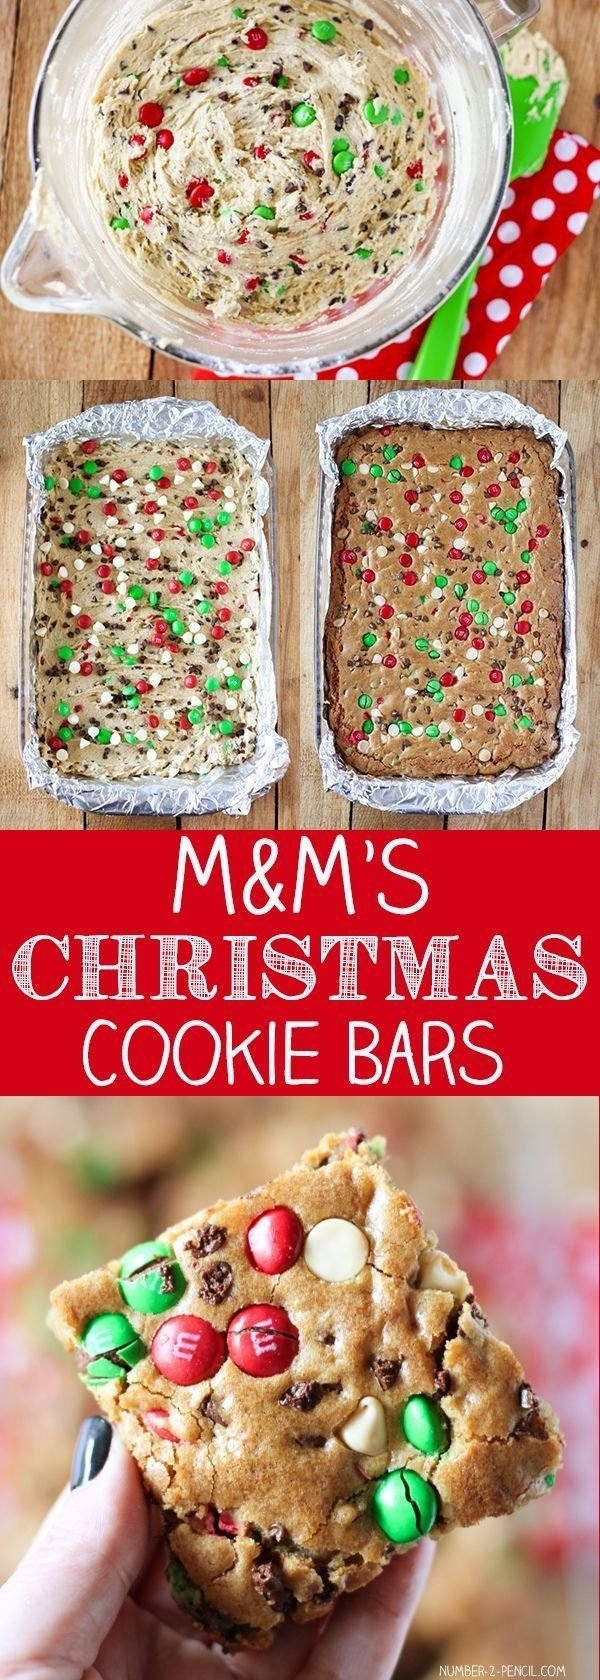 10 Attractive Christmas Treat Ideas For Kids best holiday desserts ideas christmas brownies pics for easy to make